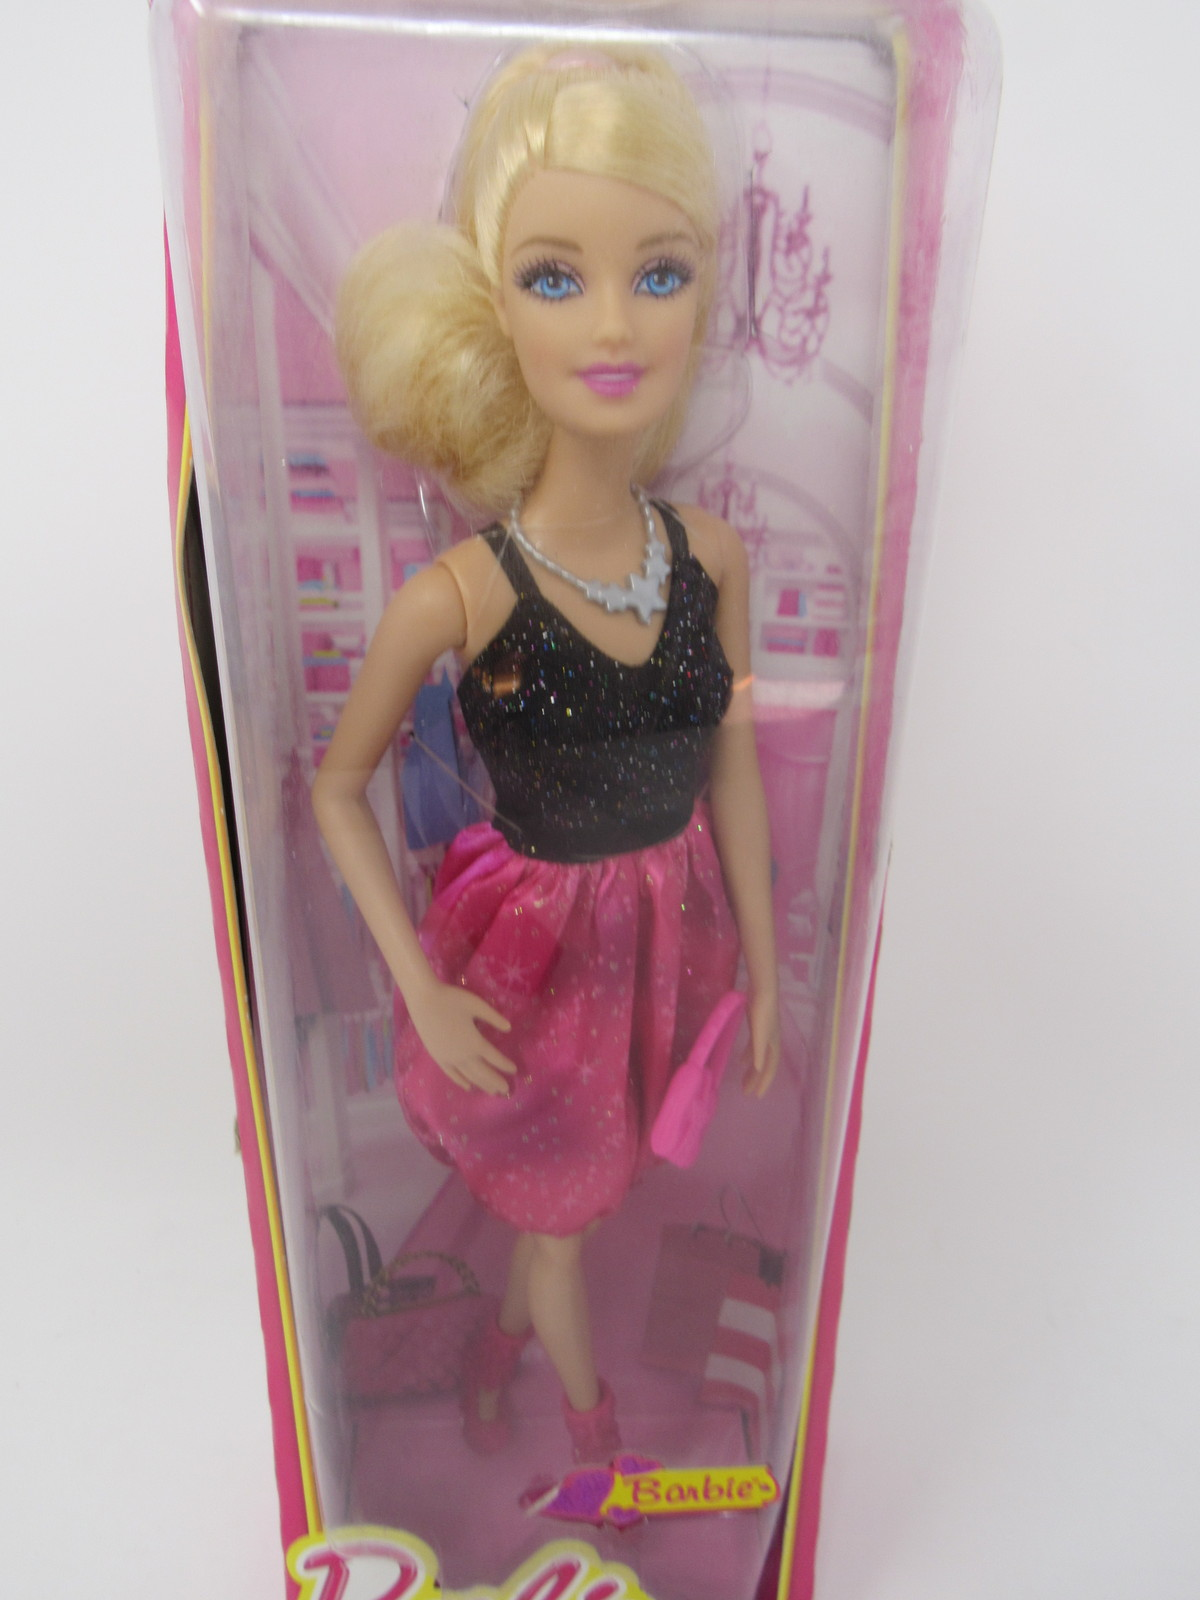 Barbie Fashionistas Doll in Pink and Black Puffer Dress